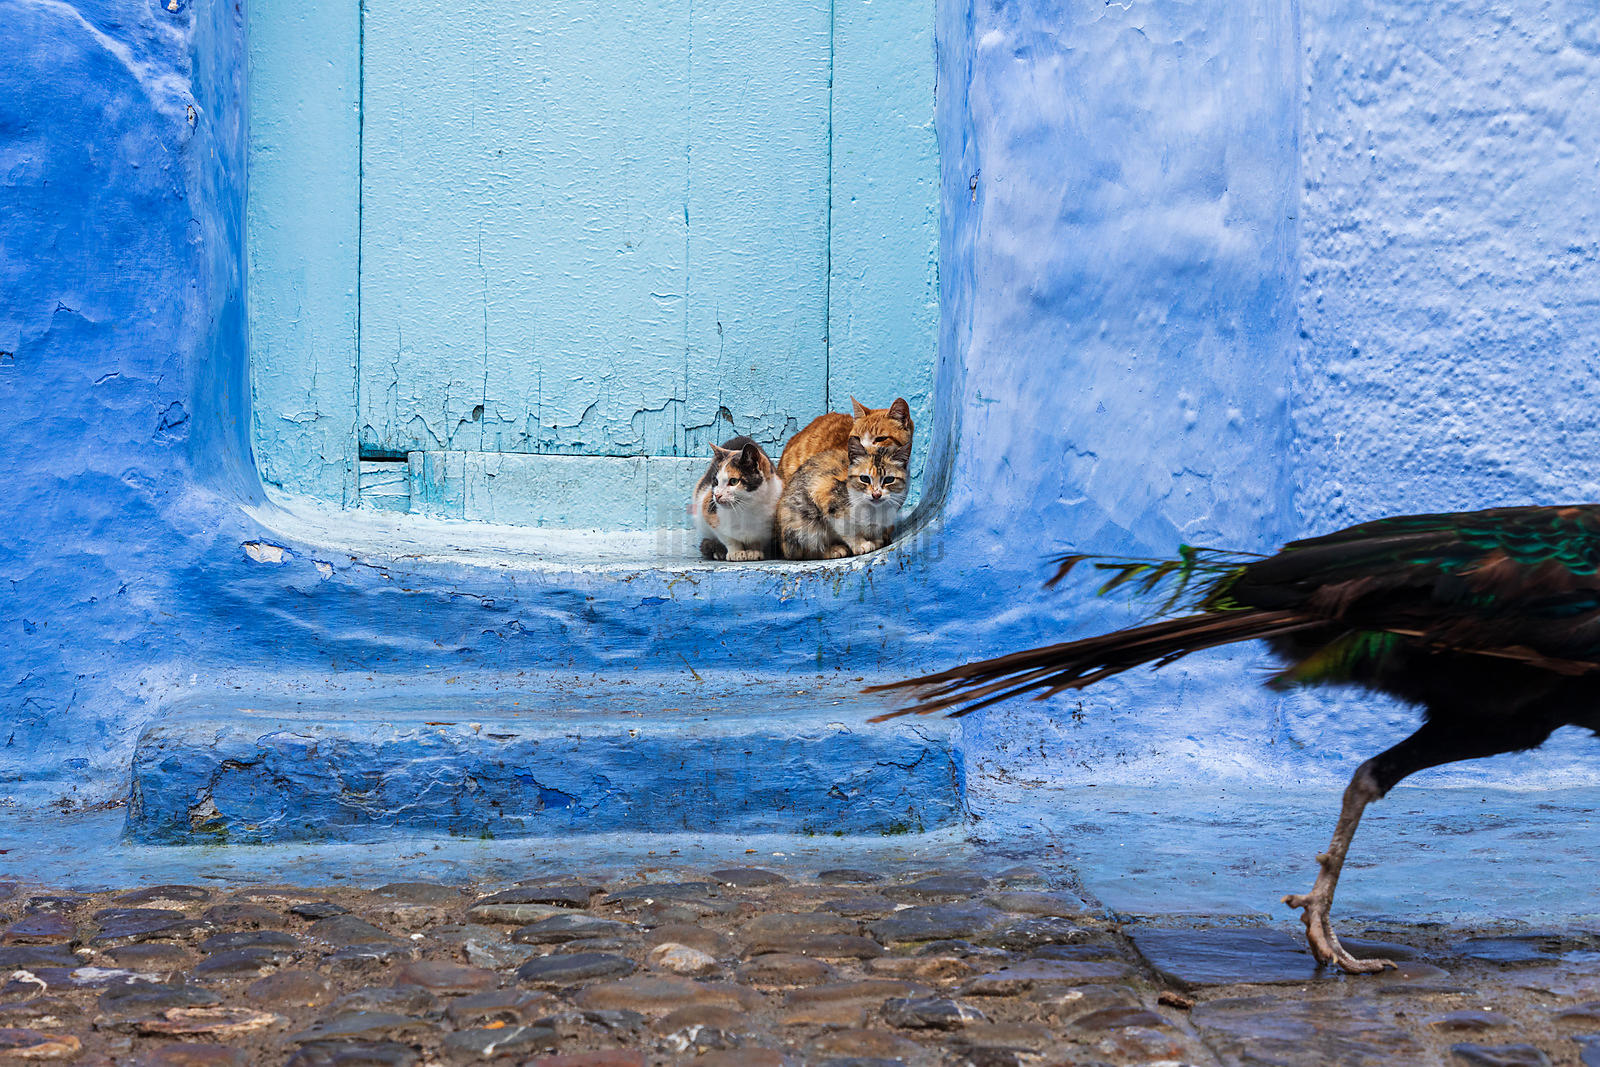 A Peacock Walks Past a Group of Street Cats in a Doorway in Chefchaouen